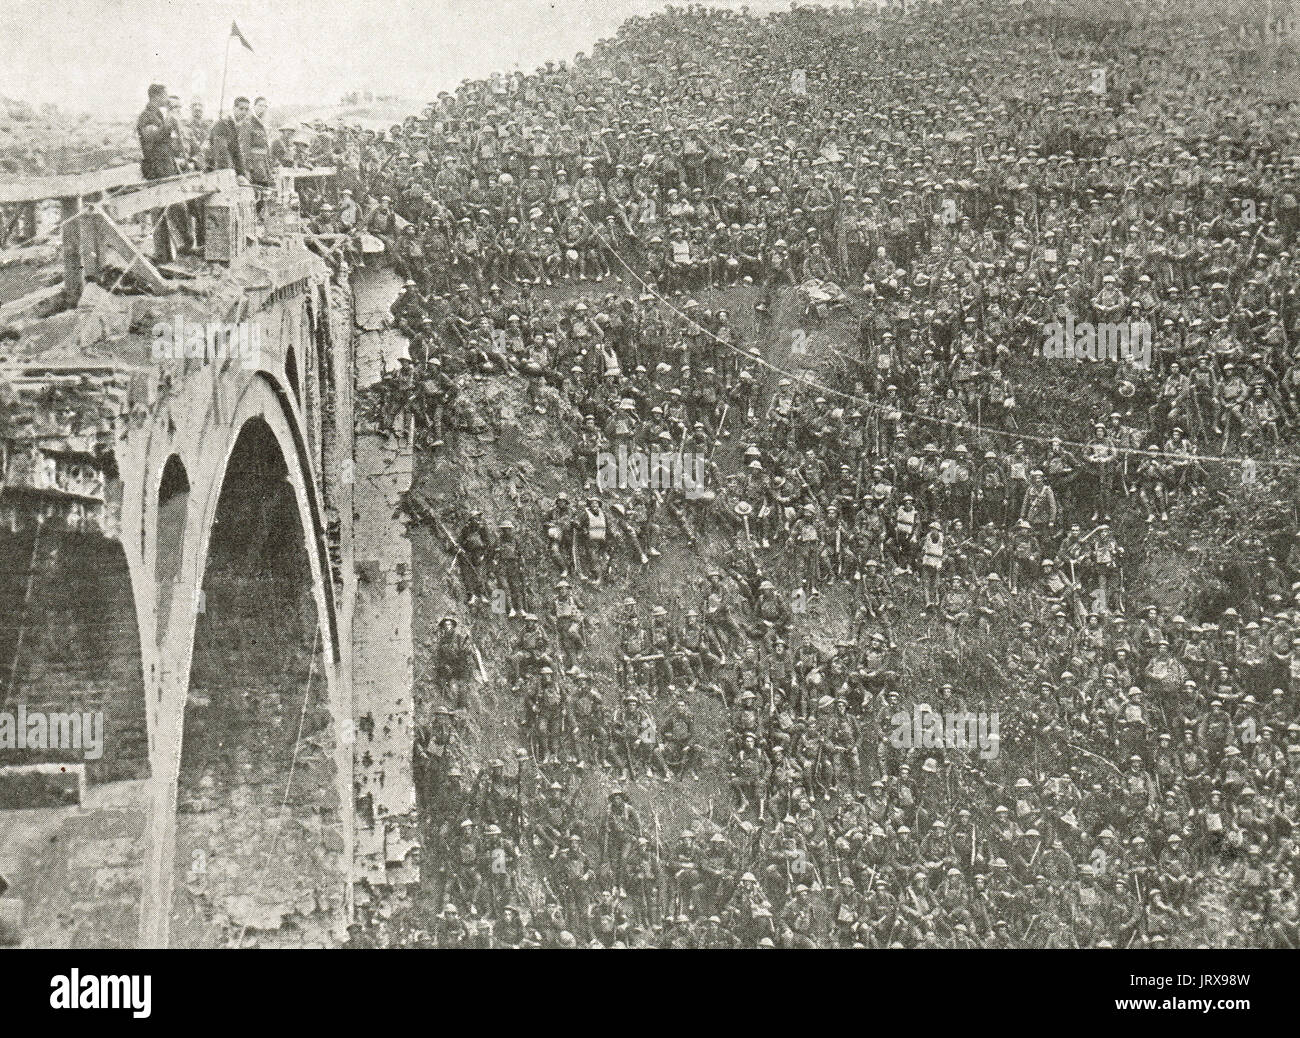 Men of the 46th division who crossed the canal at the Battle of St Quentin Canal, France, 1918 - Stock Image